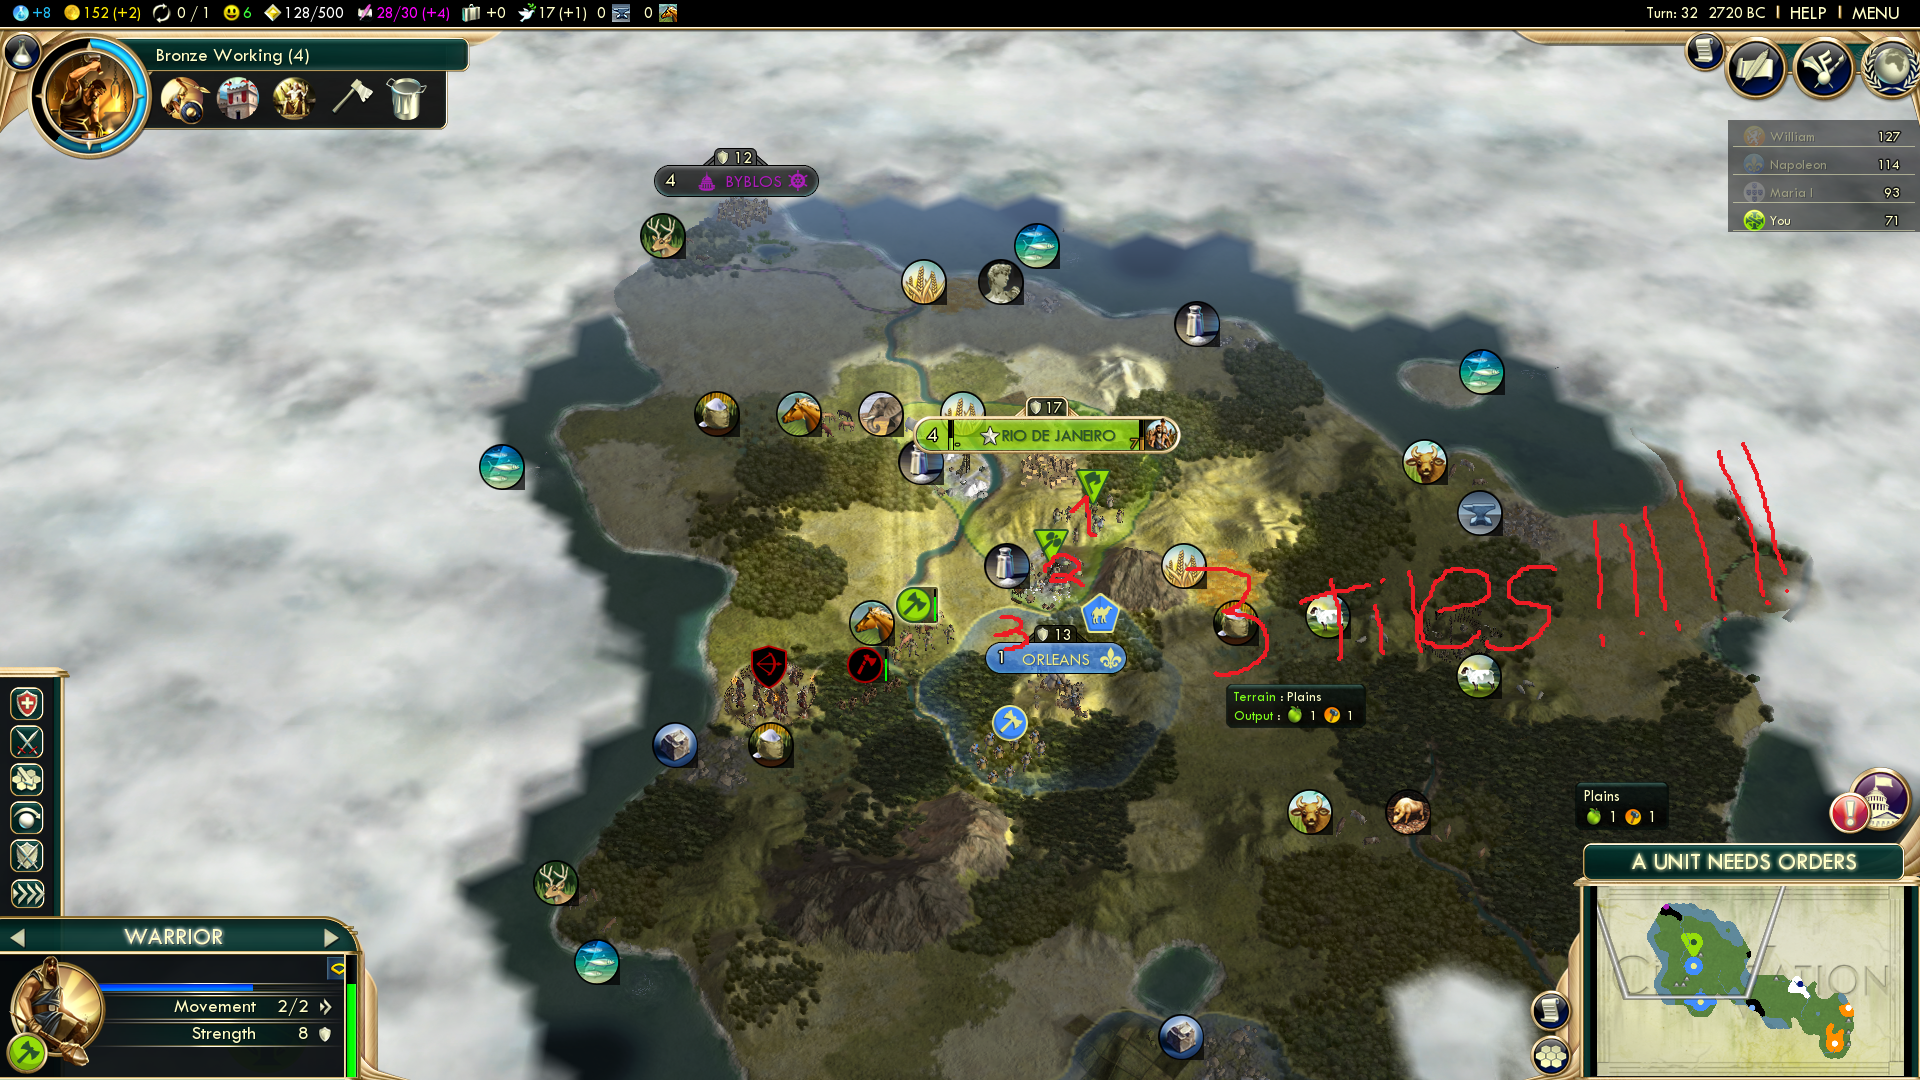 Now this is just bullshit #CivilizationBeyondEarth #gaming #Civilization #games #world #steam #SidMeier #RTS